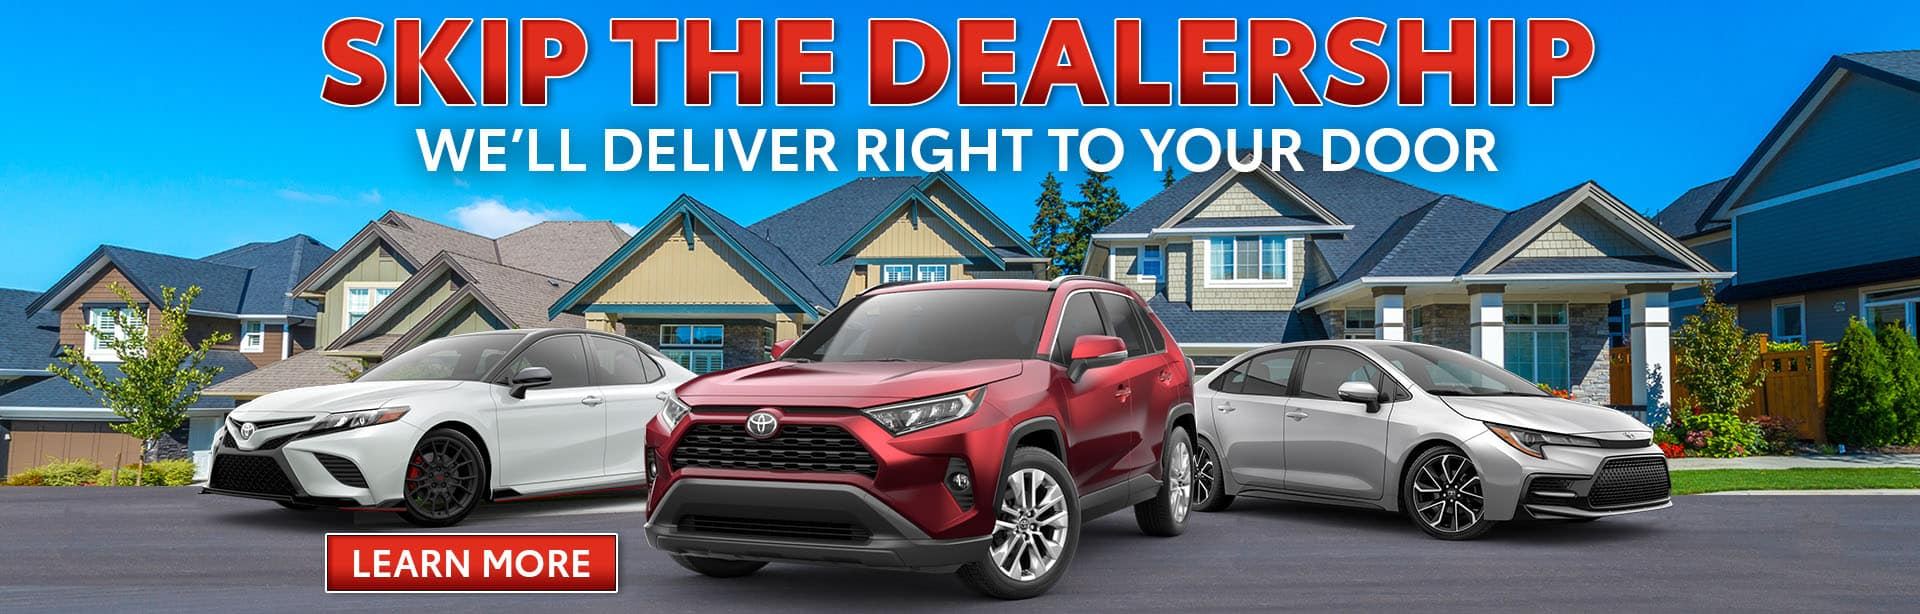 SKIP THE DEALERSHIP WE'LL DELIVER RIGHT TO YOUR DOOR